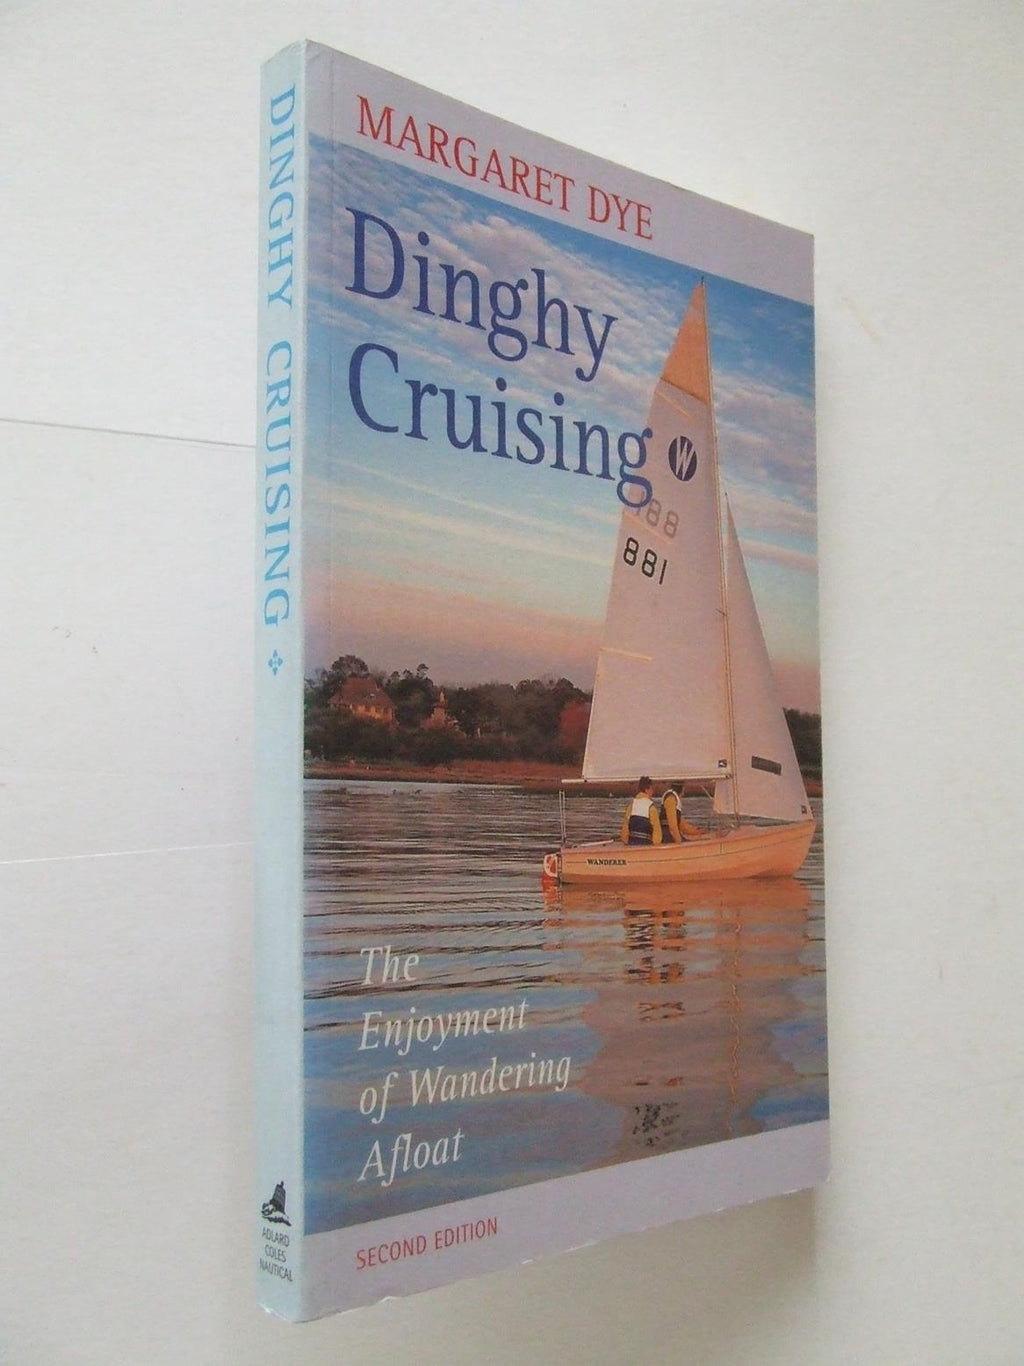 Dinghy Cruising, the enjoyment of wandering afloat